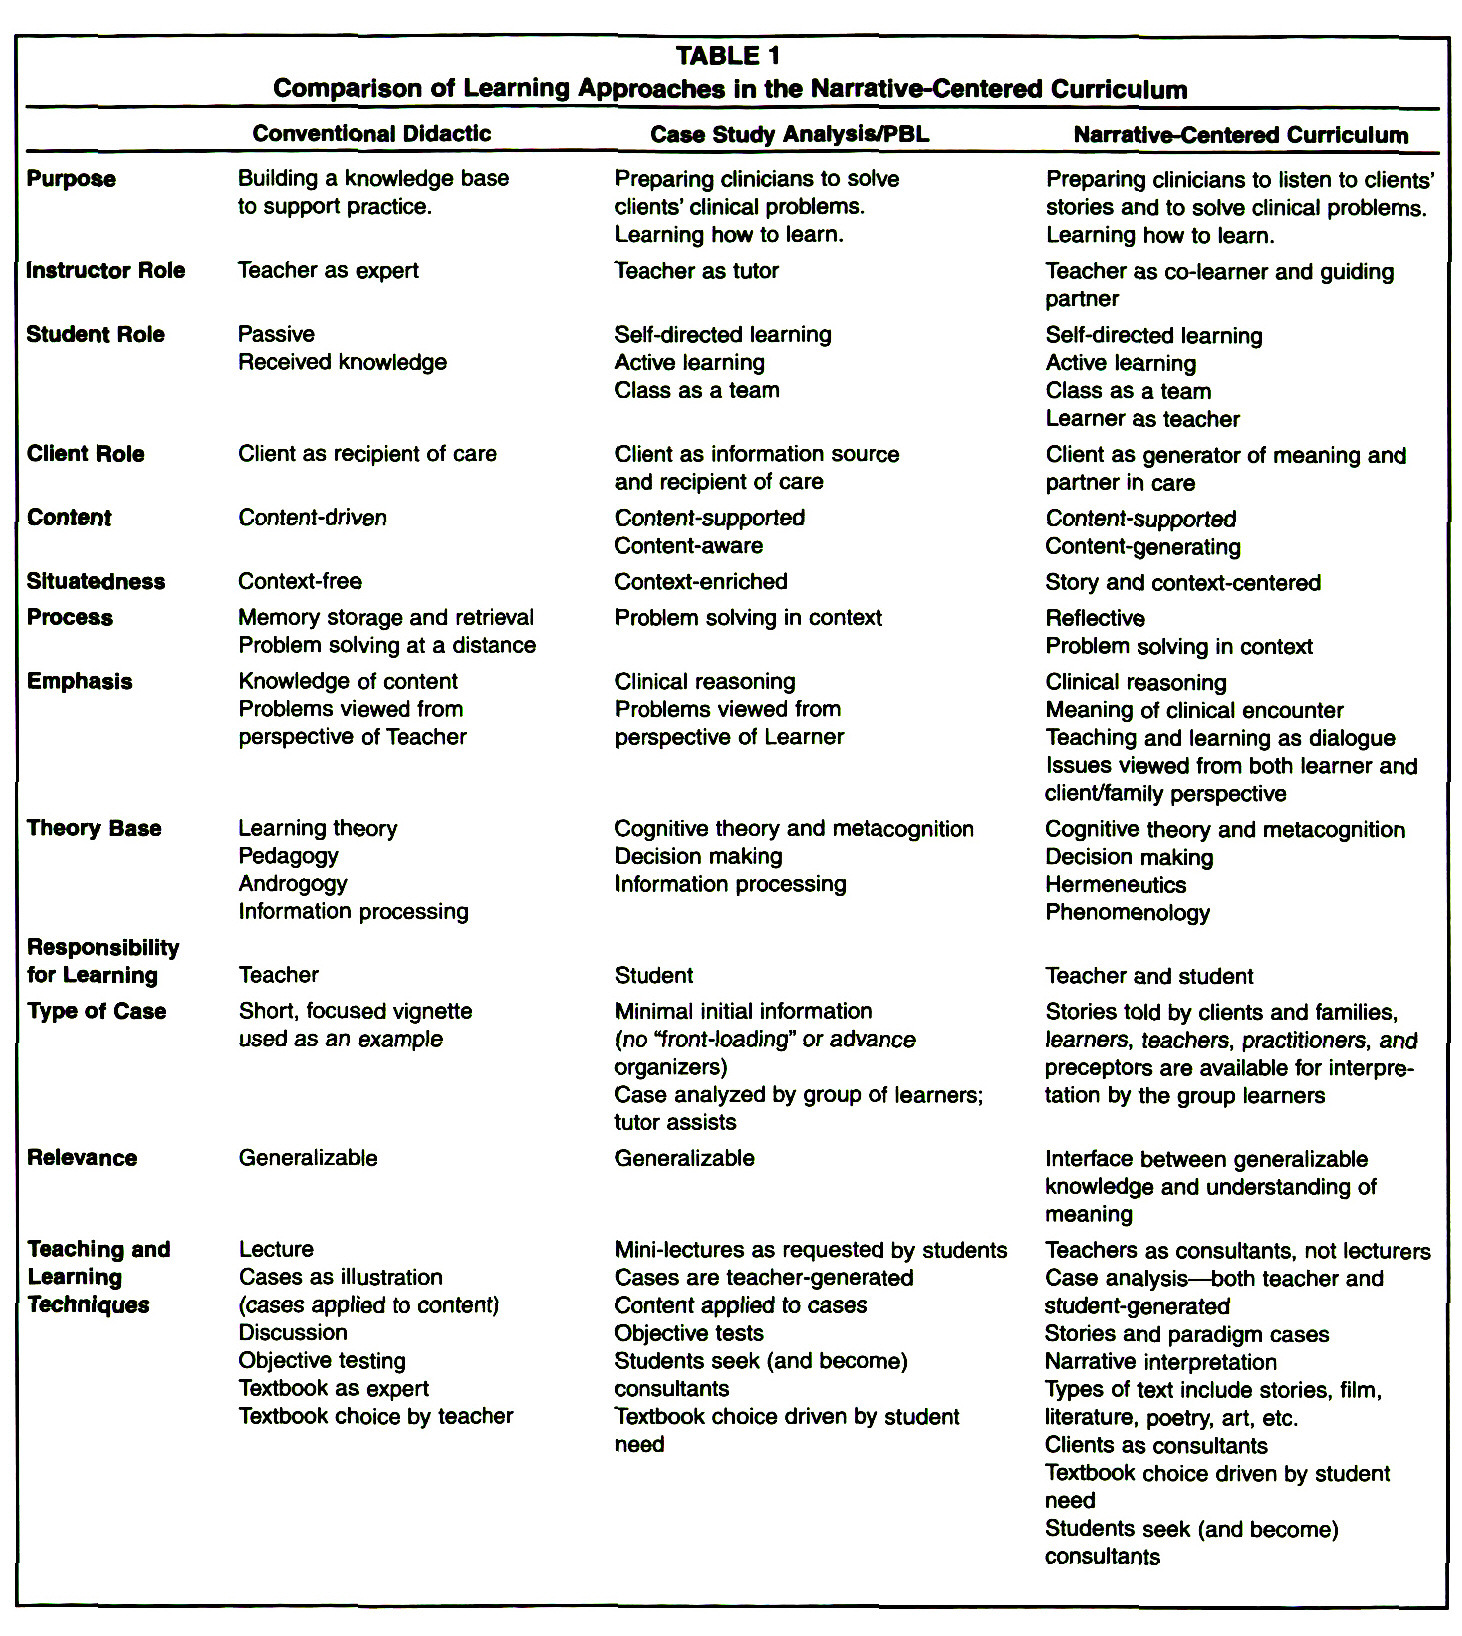 TABLE 1Comparison of Learning Approaches in the Narrative-Centered Curriculum